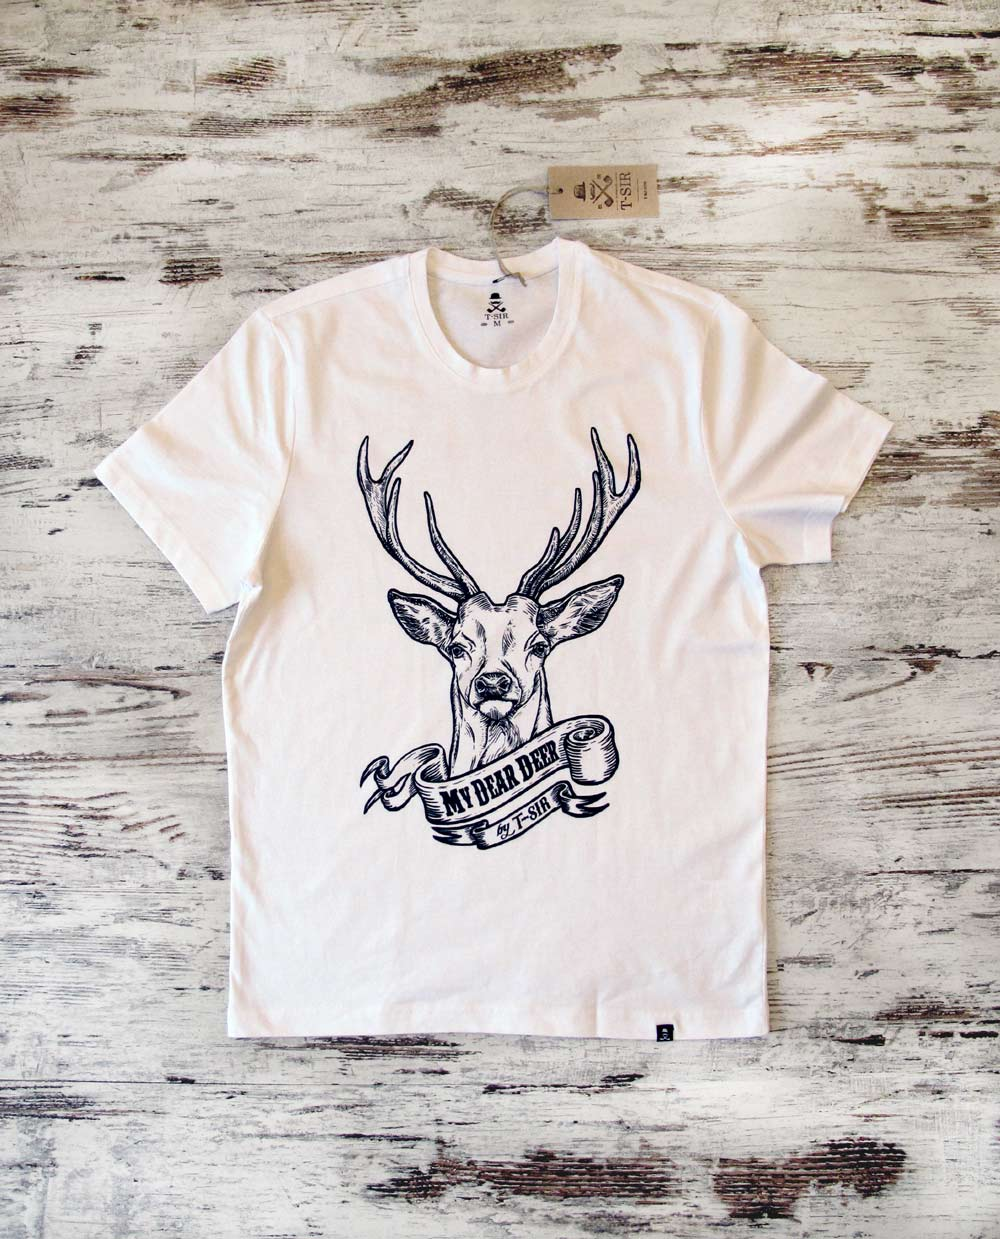 My Dear Deer tee